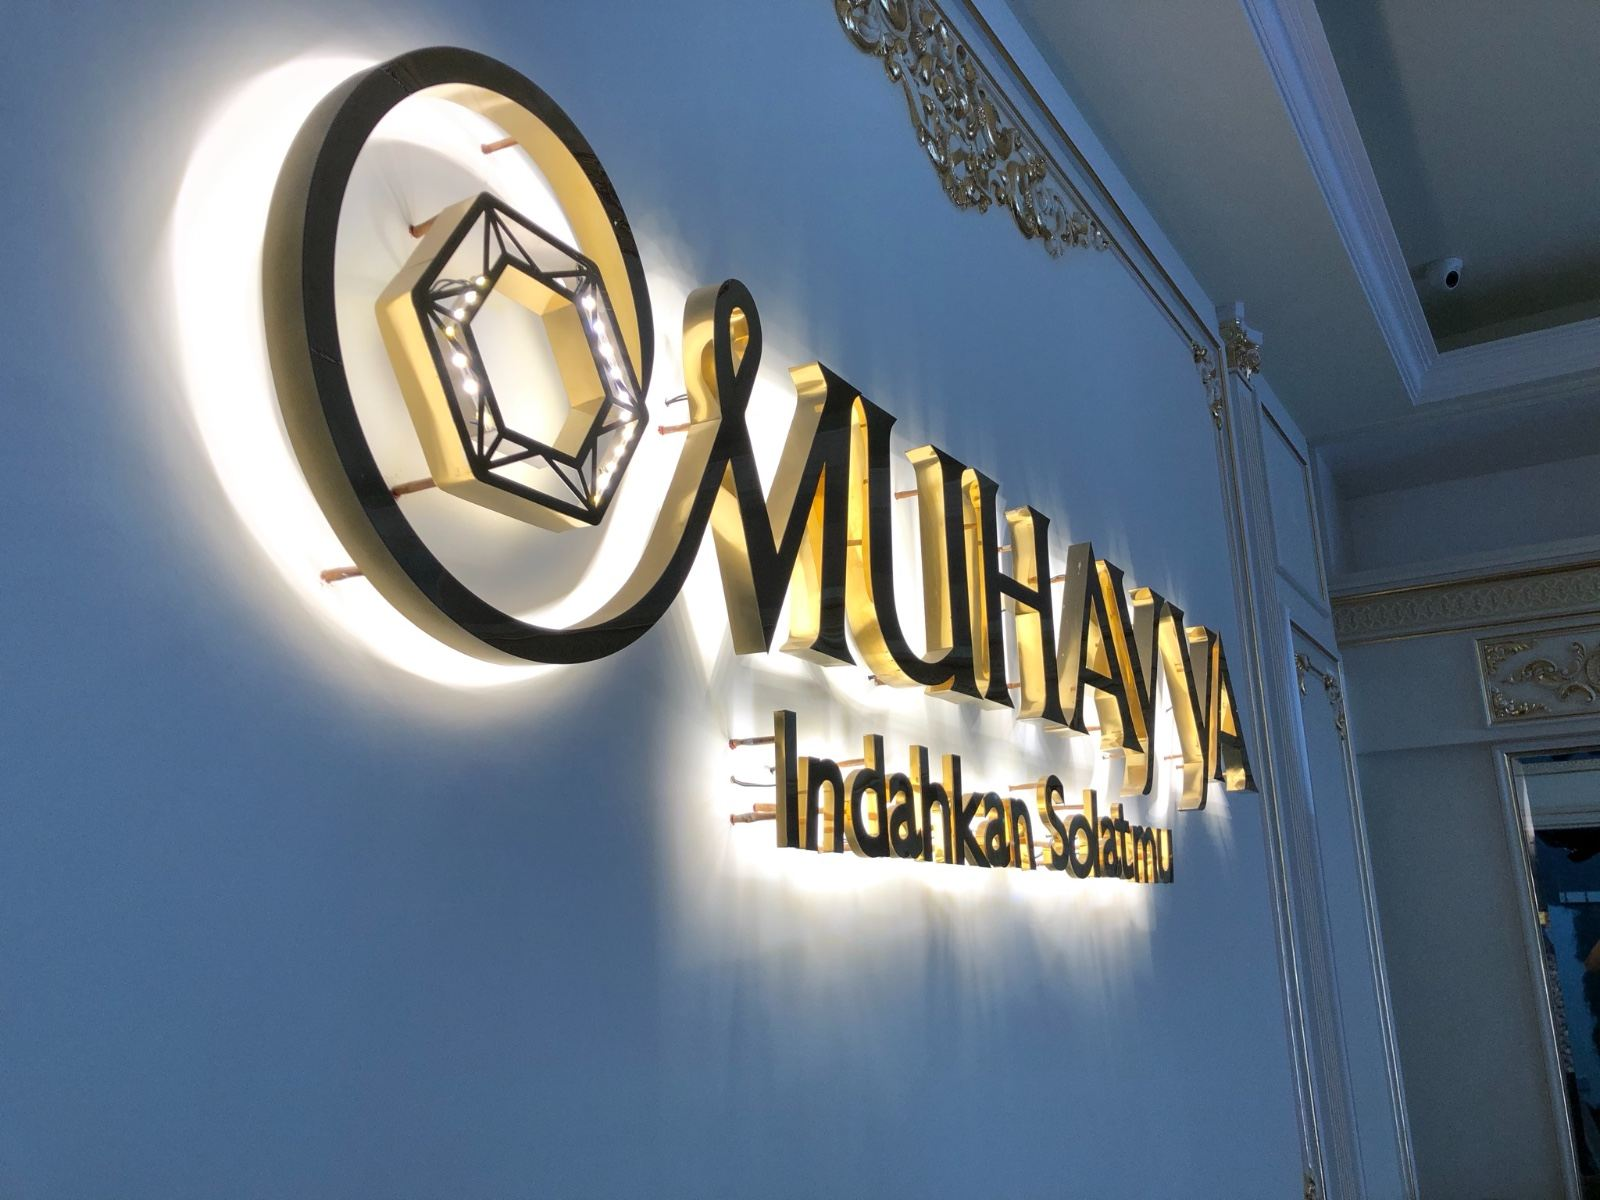 3d Stainless Steel Gold Mirror Led Backlit Effect (Muhayya Signboard) at Kajang